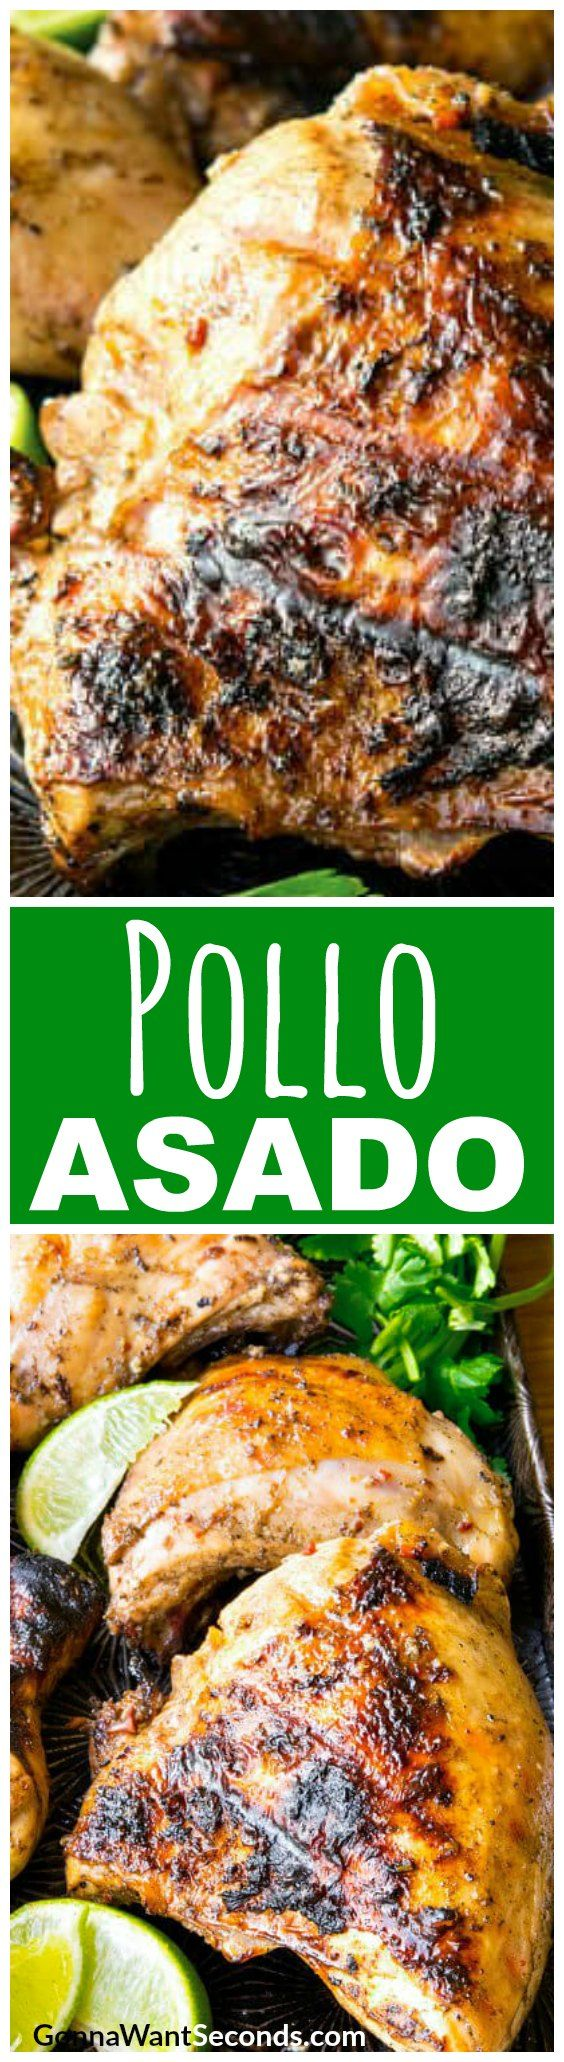 Put a Mexican spin on your grilled chicken with this Pollo Asado recipe. Smoky, spicy, tangy and tasty, this dish has it all, and your backyard BBQs will be the most popular ones on the block!